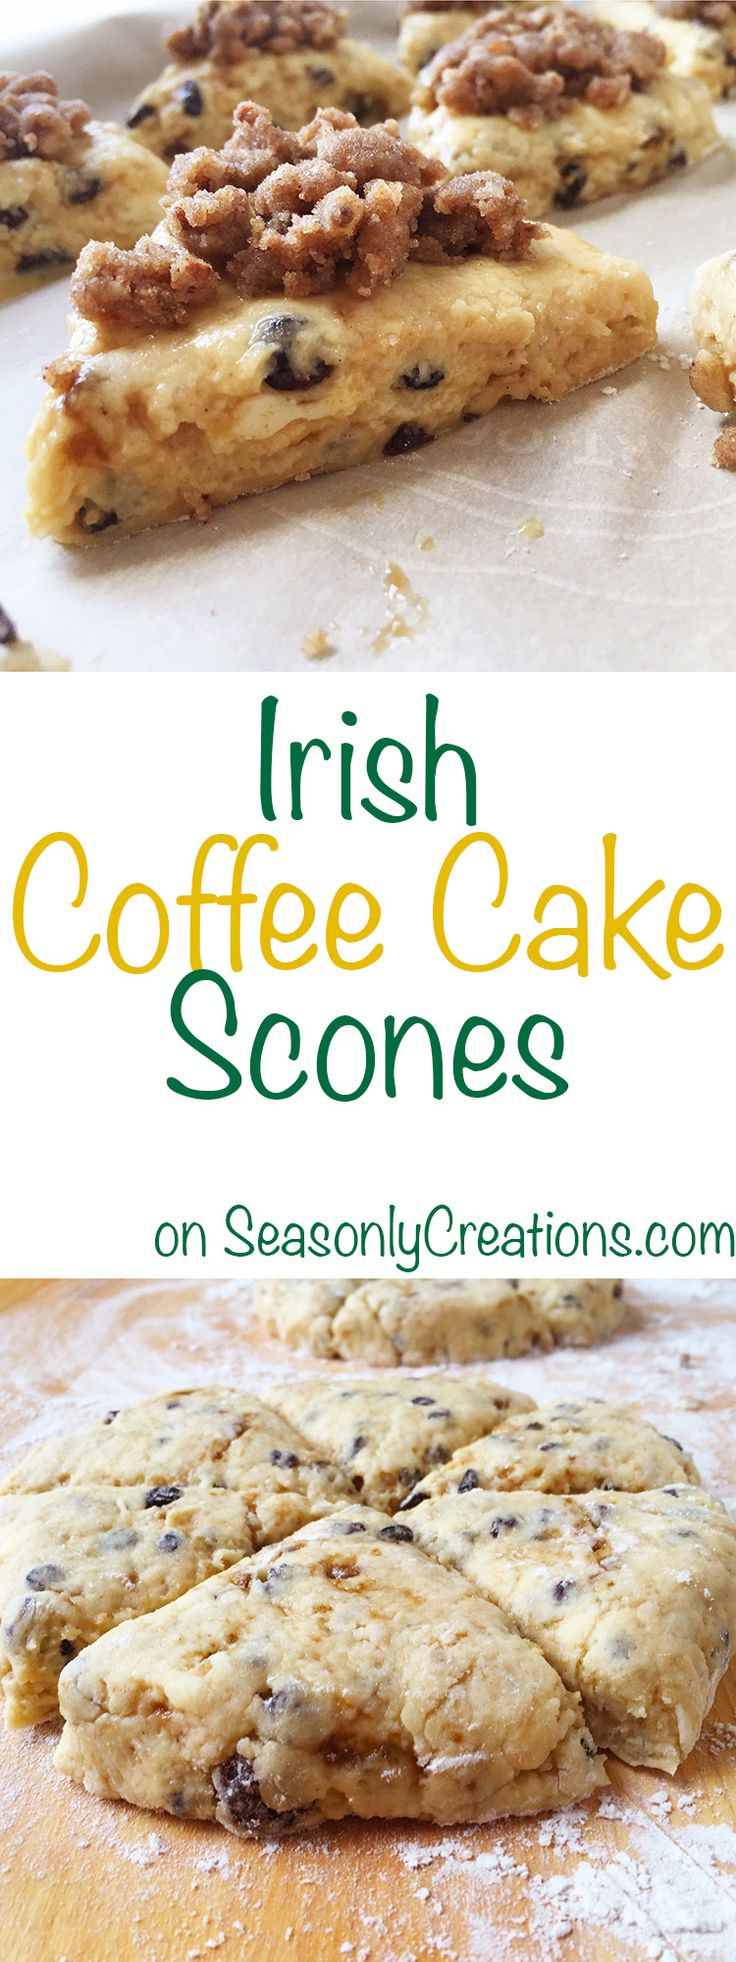 Irish Coffee Cake Scone recipe, a great option for St. Patricks Day or anytime…